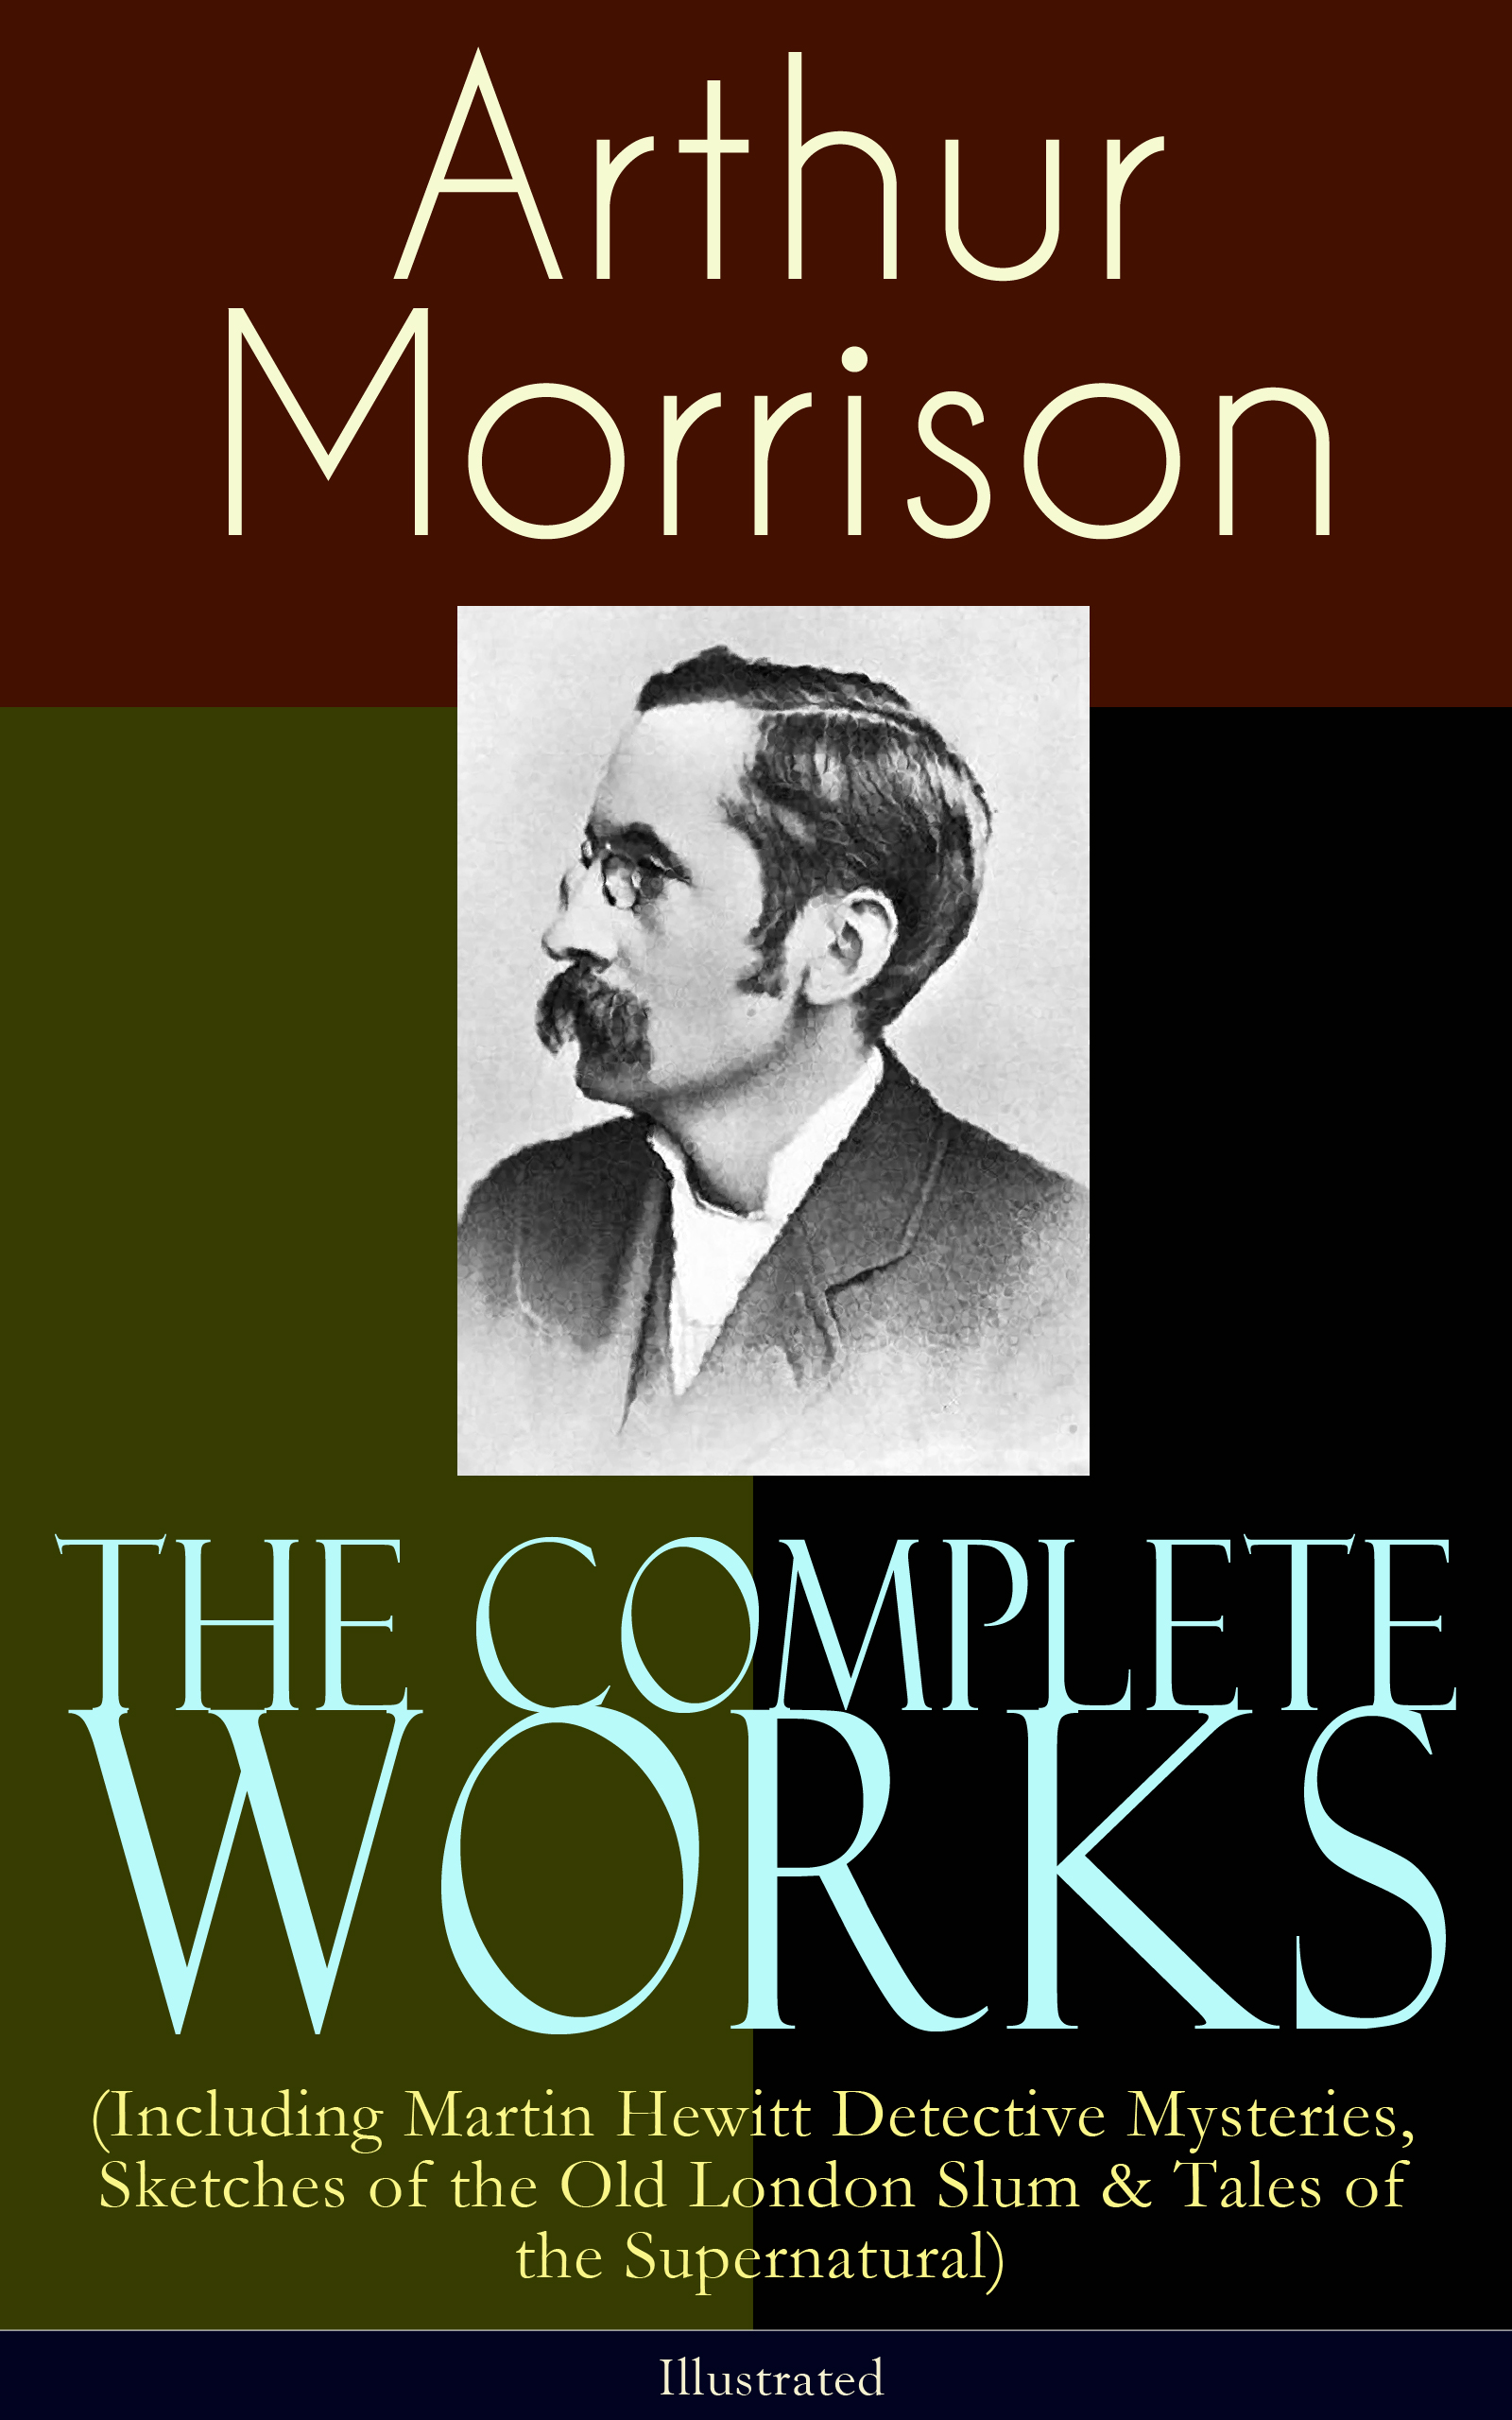 Arthur Morrison The Complete Works of Arthur Morrison (Including Martin Hewitt Detective Mysteries, Sketches of the Old London Slum & Tales of the Supernatural) - Illustrated l wagner martin toni morrison a literary life